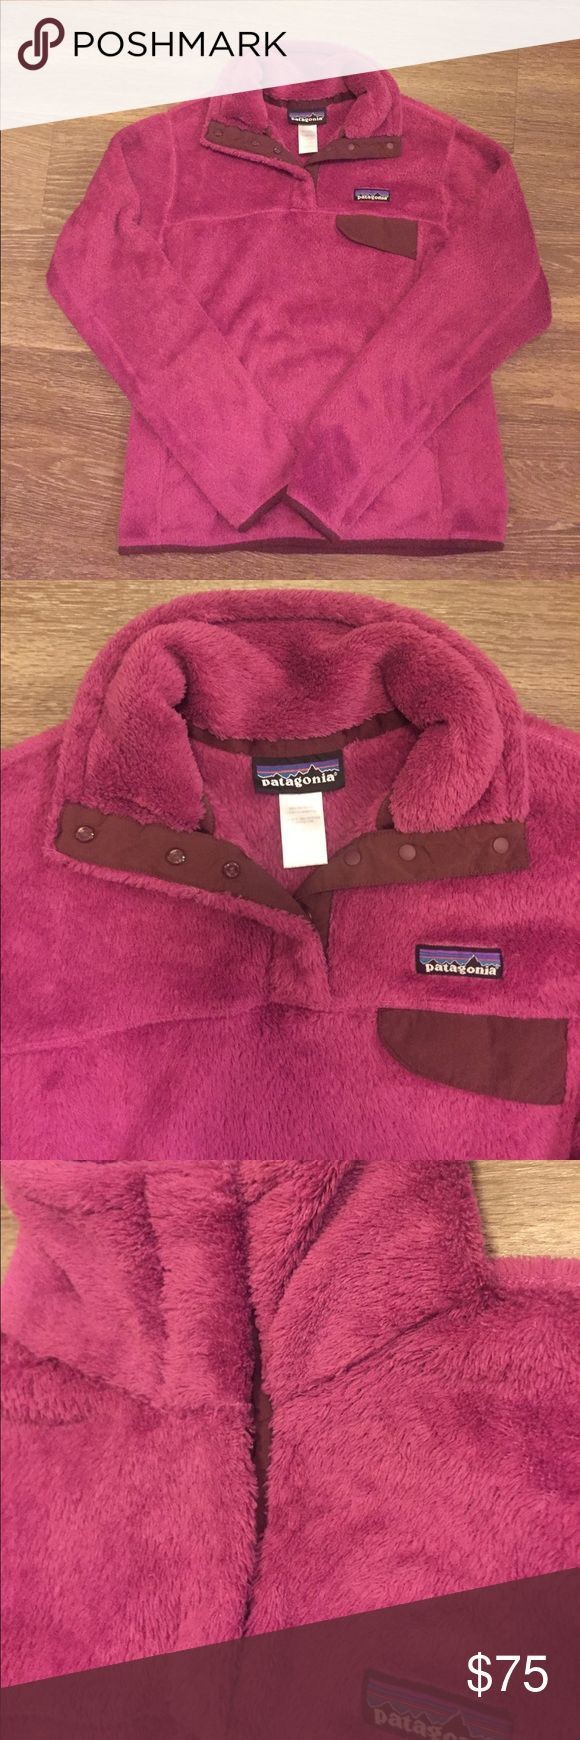 Patagonia Re Tool Pink and Brown Fleece - Small Very cute and comfy Patagonia fleece for sale! EUC! Pink in color with brown accents makes this a must have for your fall wardrobe! This jacket has been well taken care of and is in excellent condition. No rips, stains or snags anywhere on this fleece. Let me know if you have any questions!   🚫Pets  🚫Smoking Patagonia Jackets & Coats